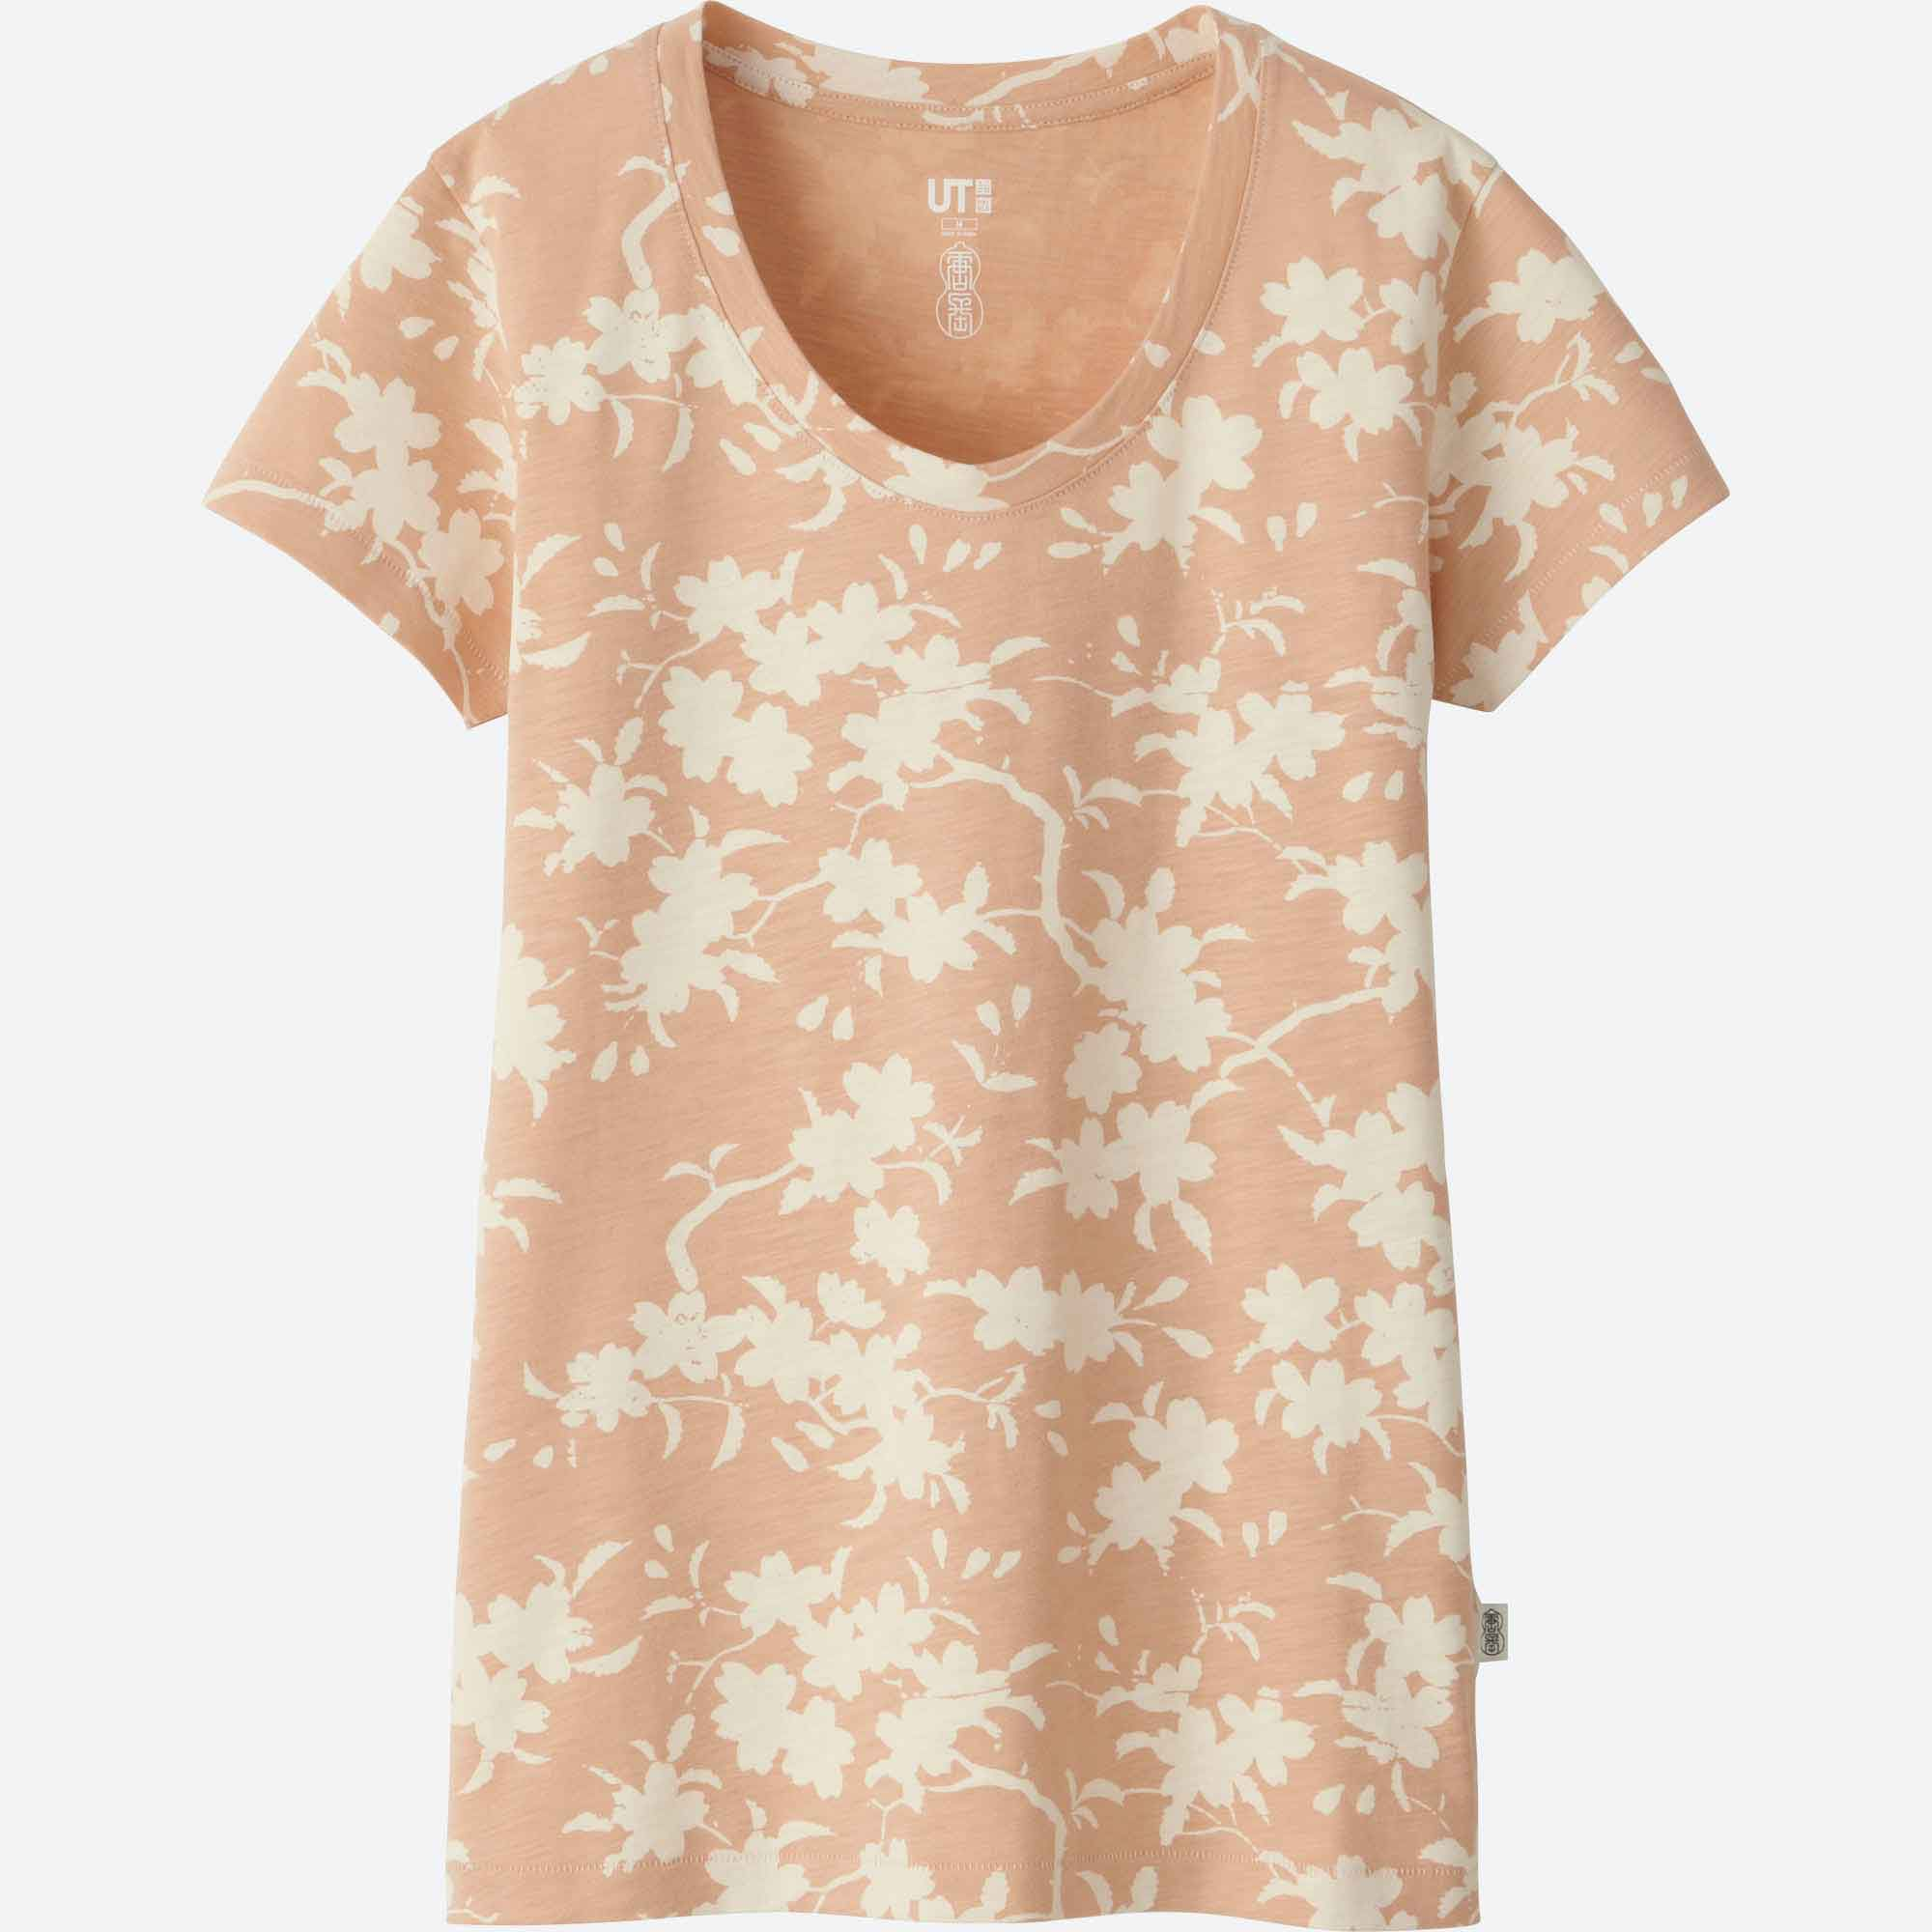 The Uniqlo Ut Graphic Tee Collection Us Apparel Gt Women39s Tshirts Tops Couple Personalized